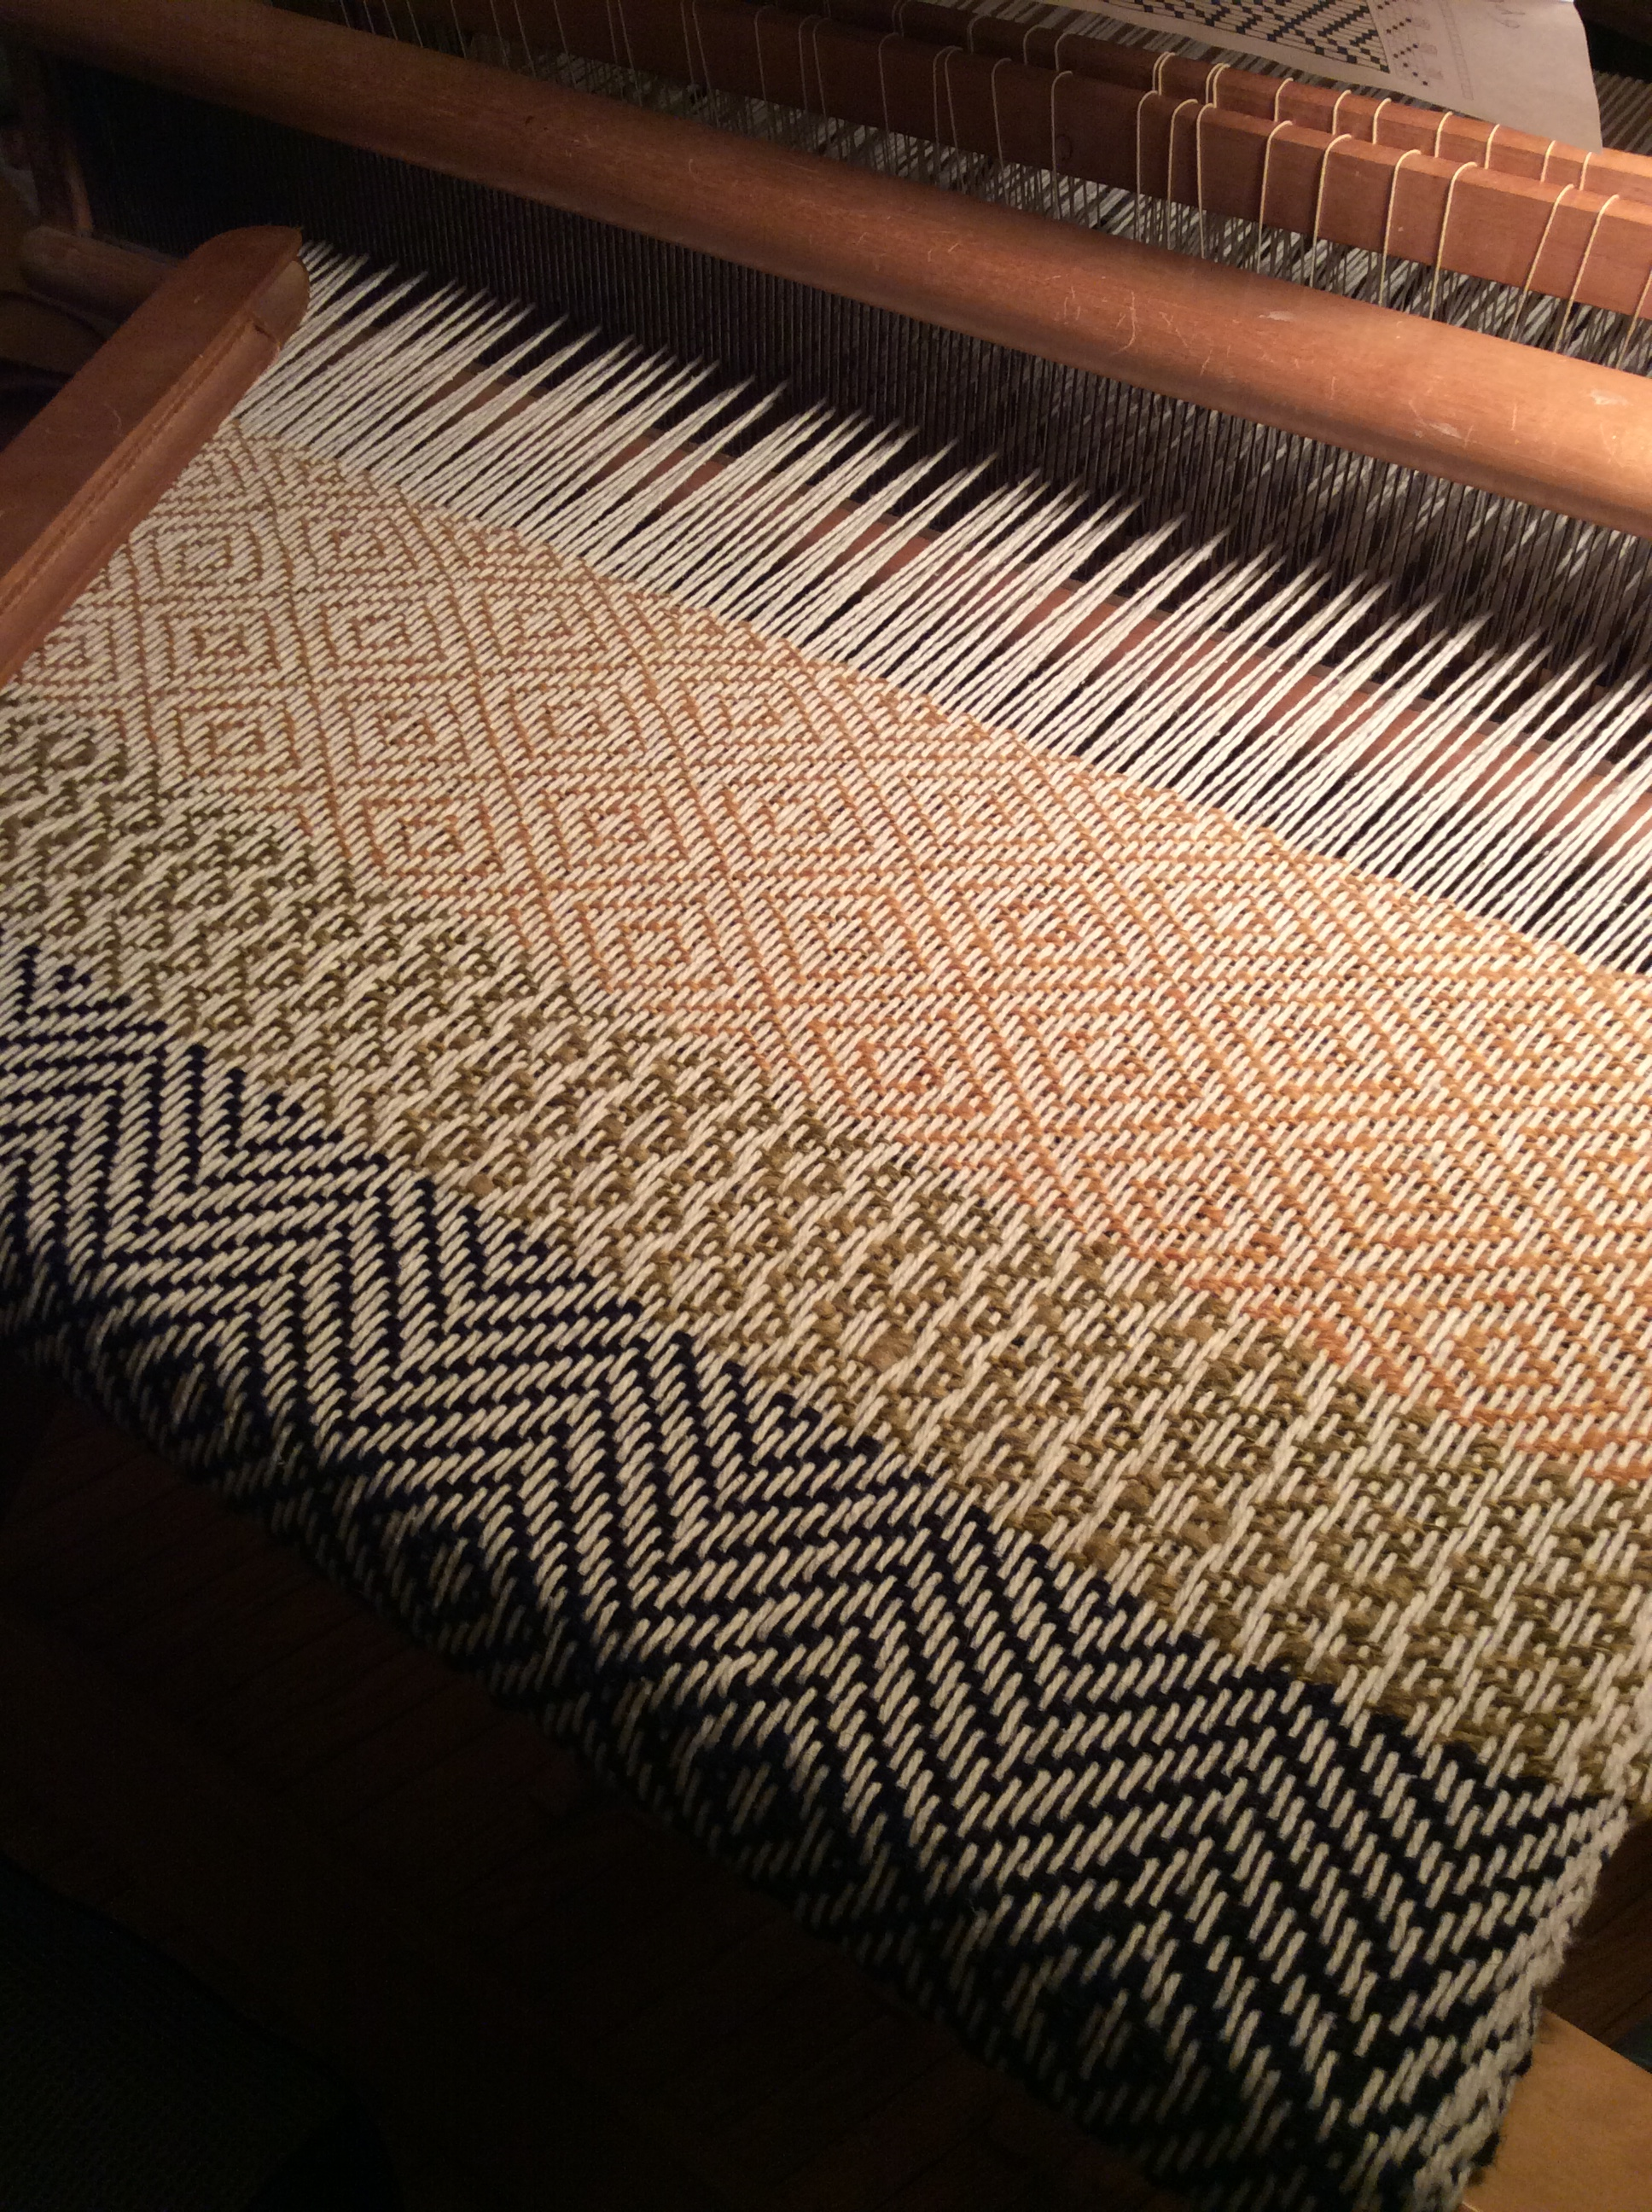 Shawland Weaving Diamond Pattern On Four Shaft Loom